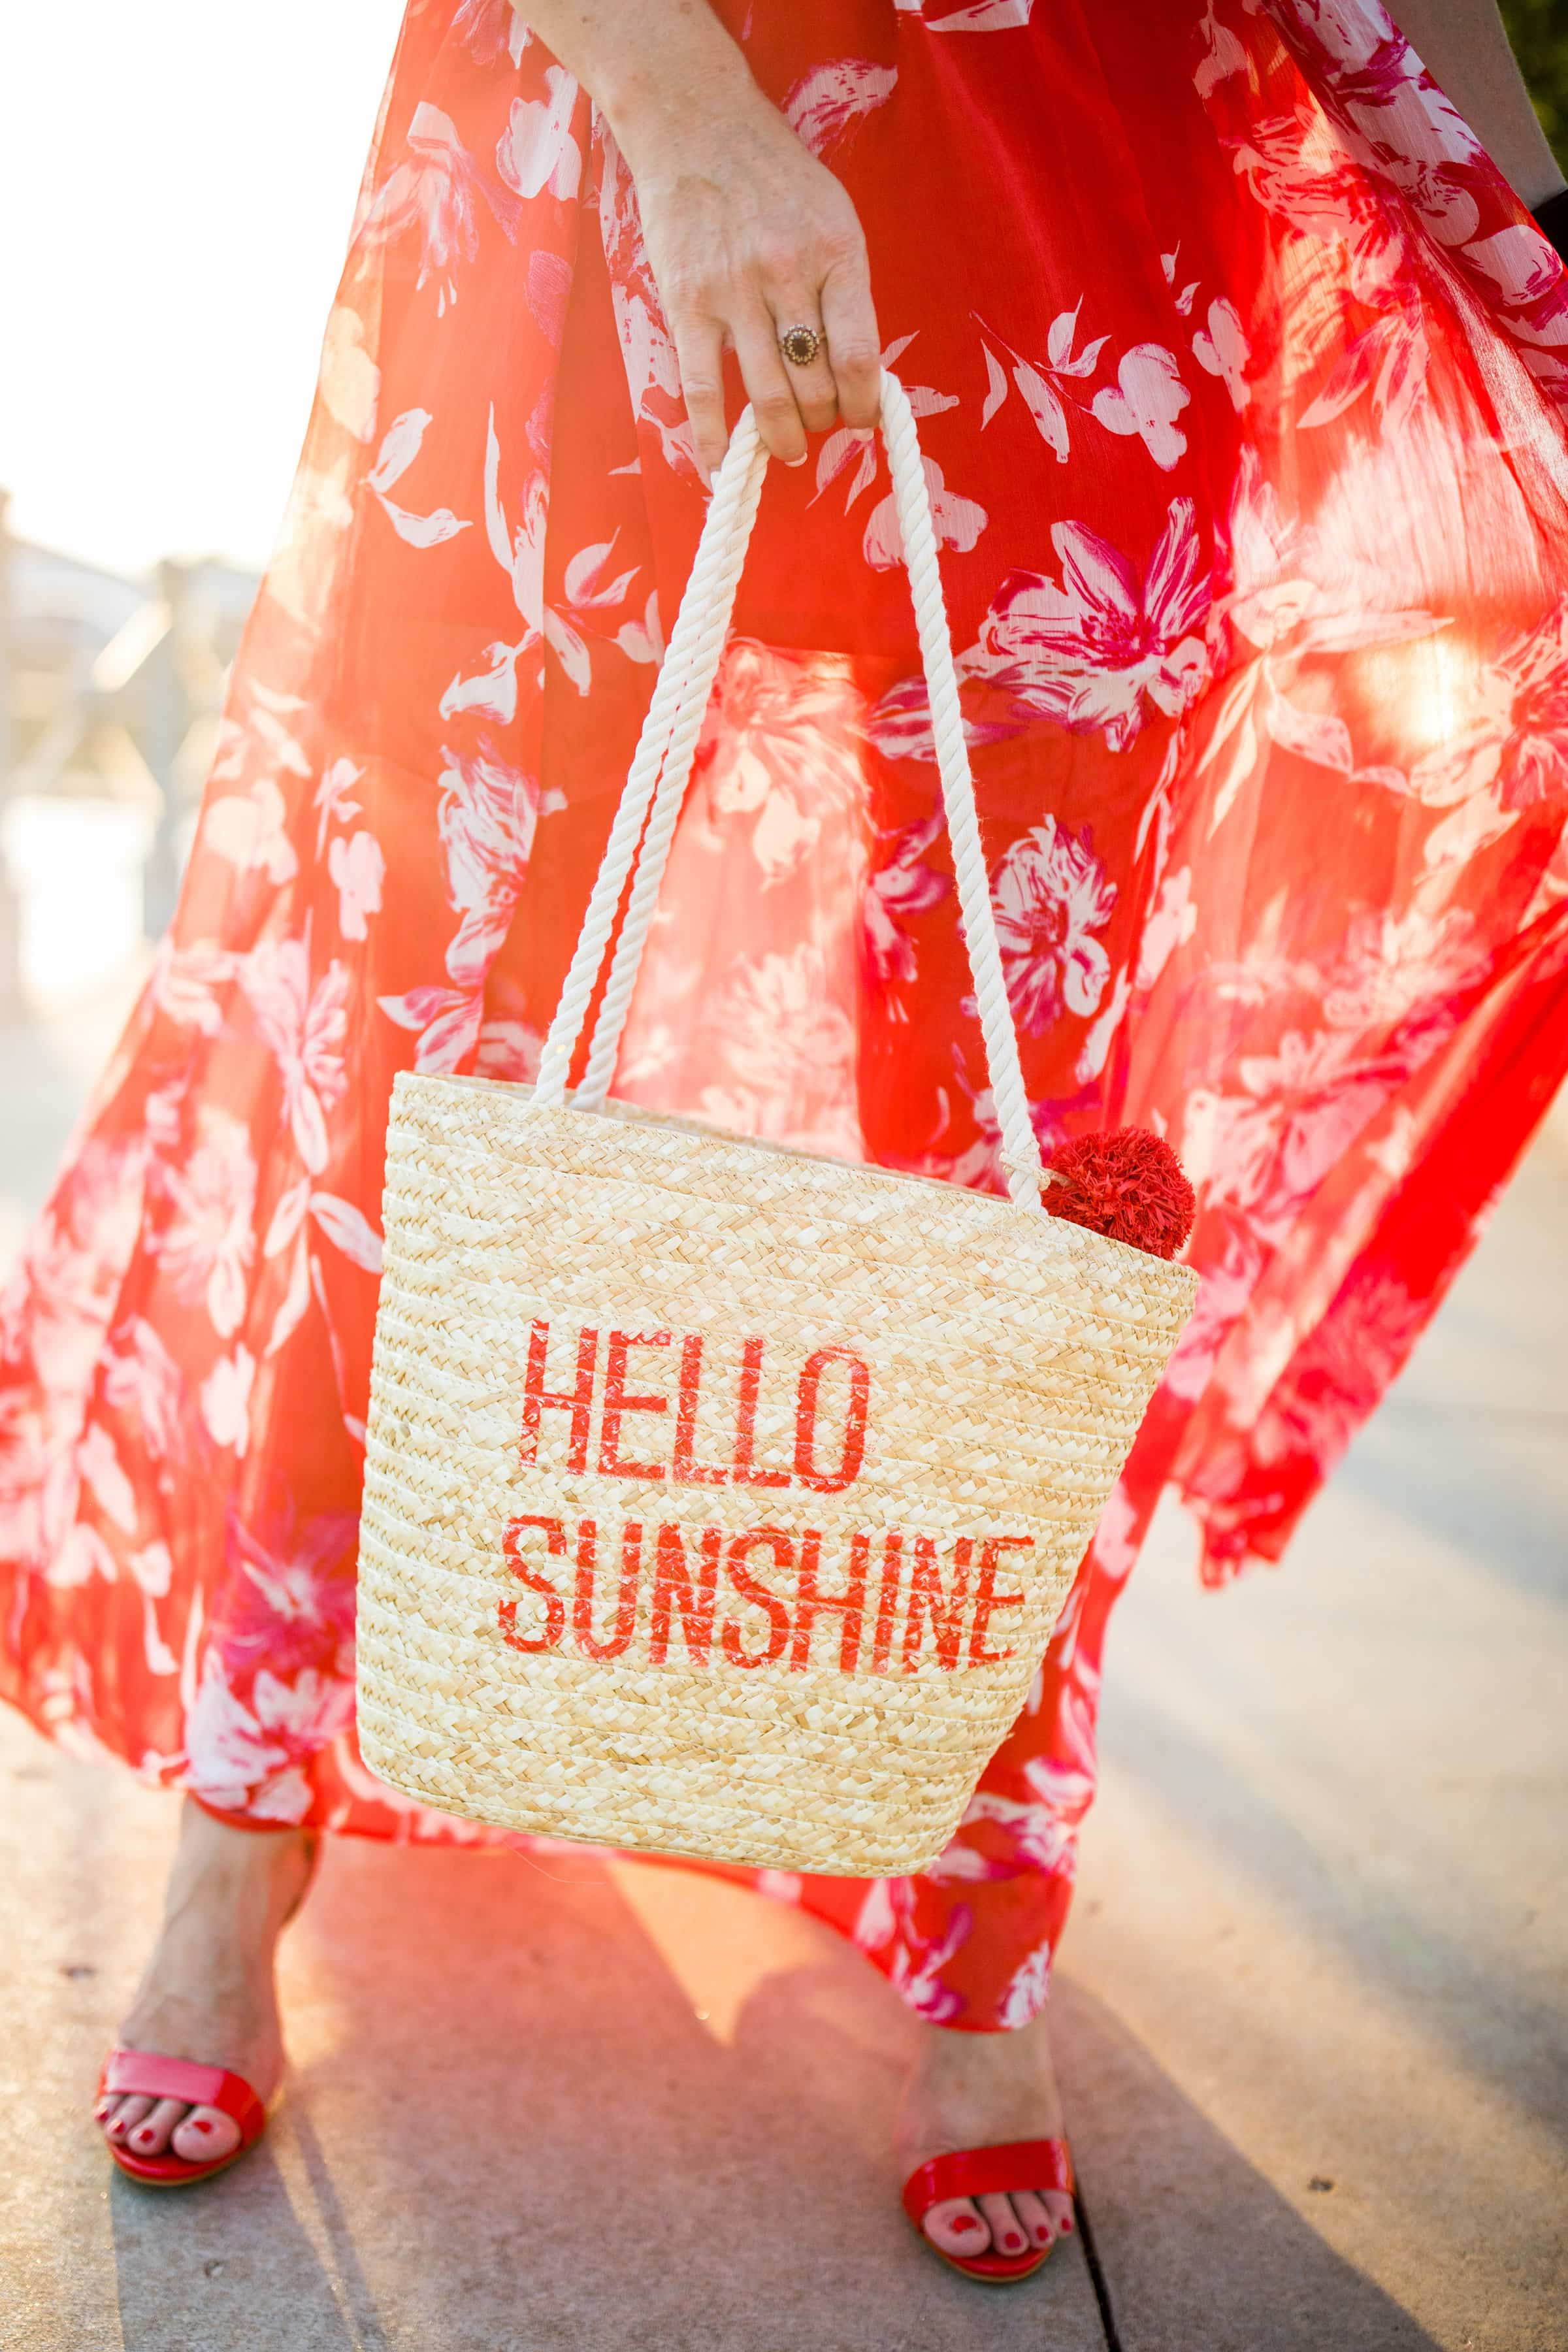 The Red Maxi Dress You Need for Summer - Plus Hello Sunshine Straw Bag